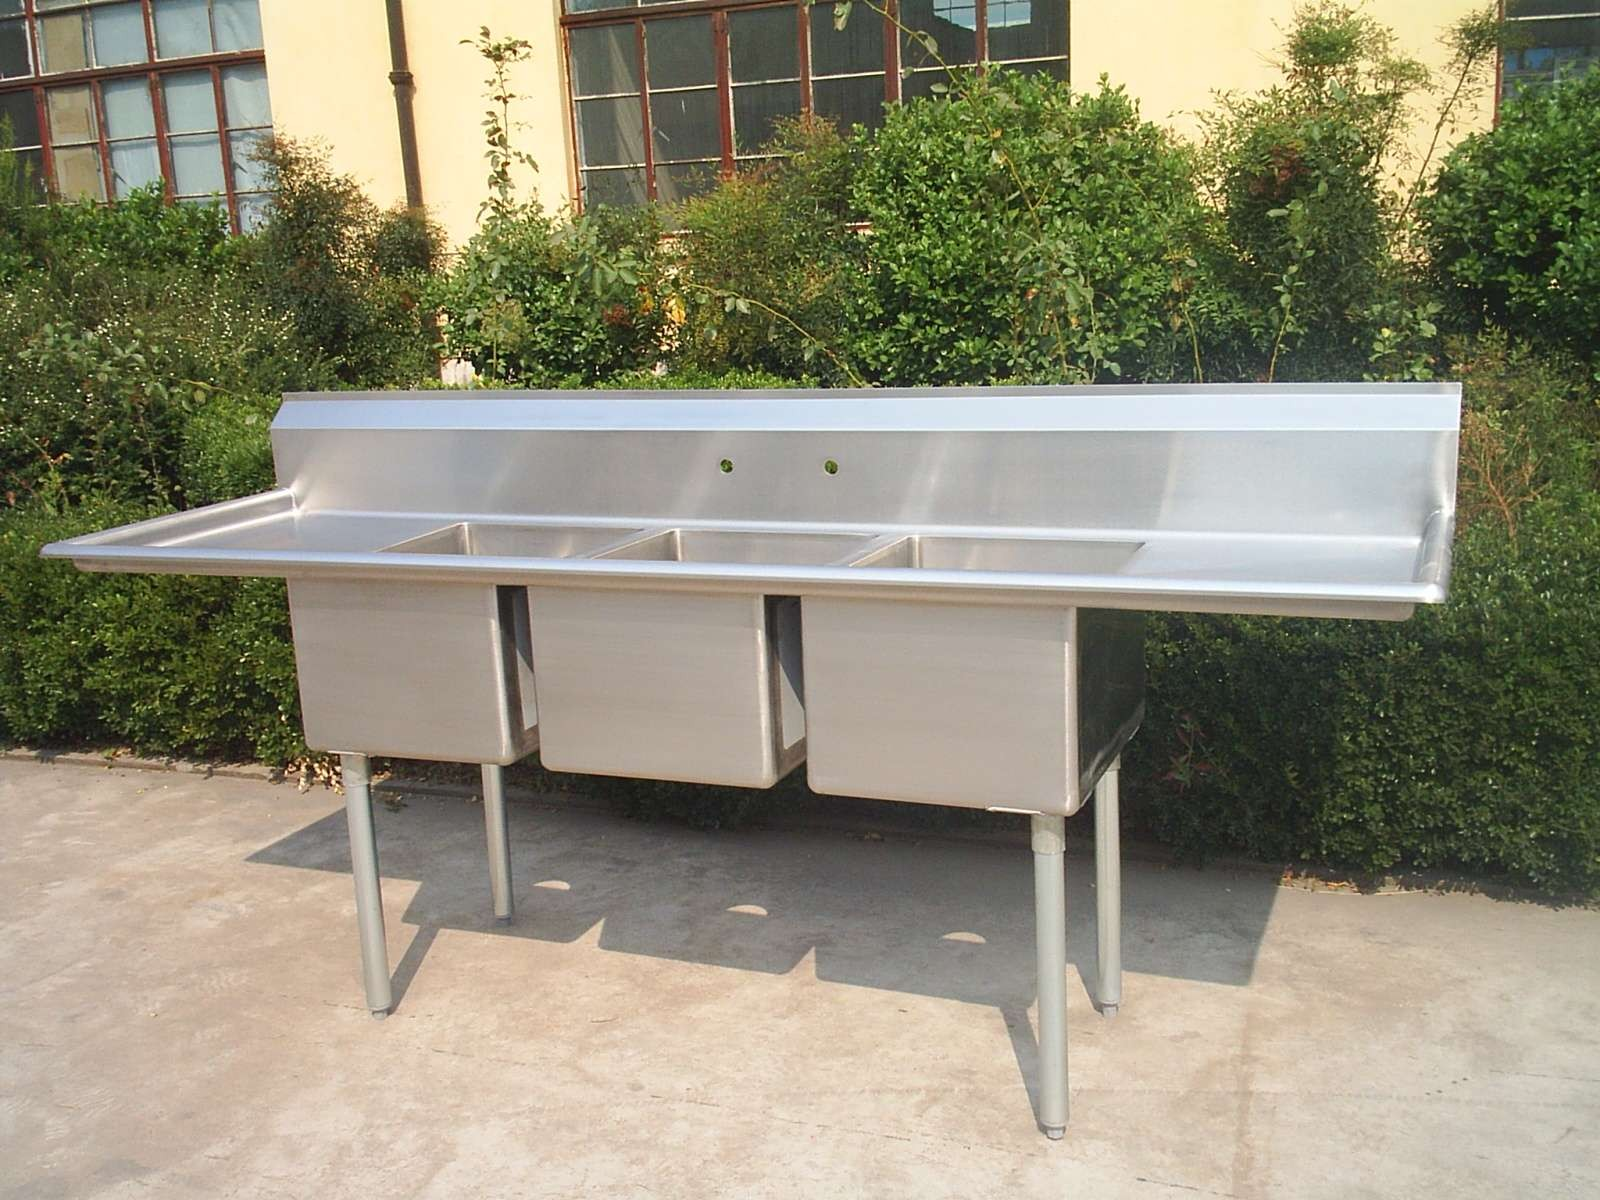 Stainless Steel Sink With 2